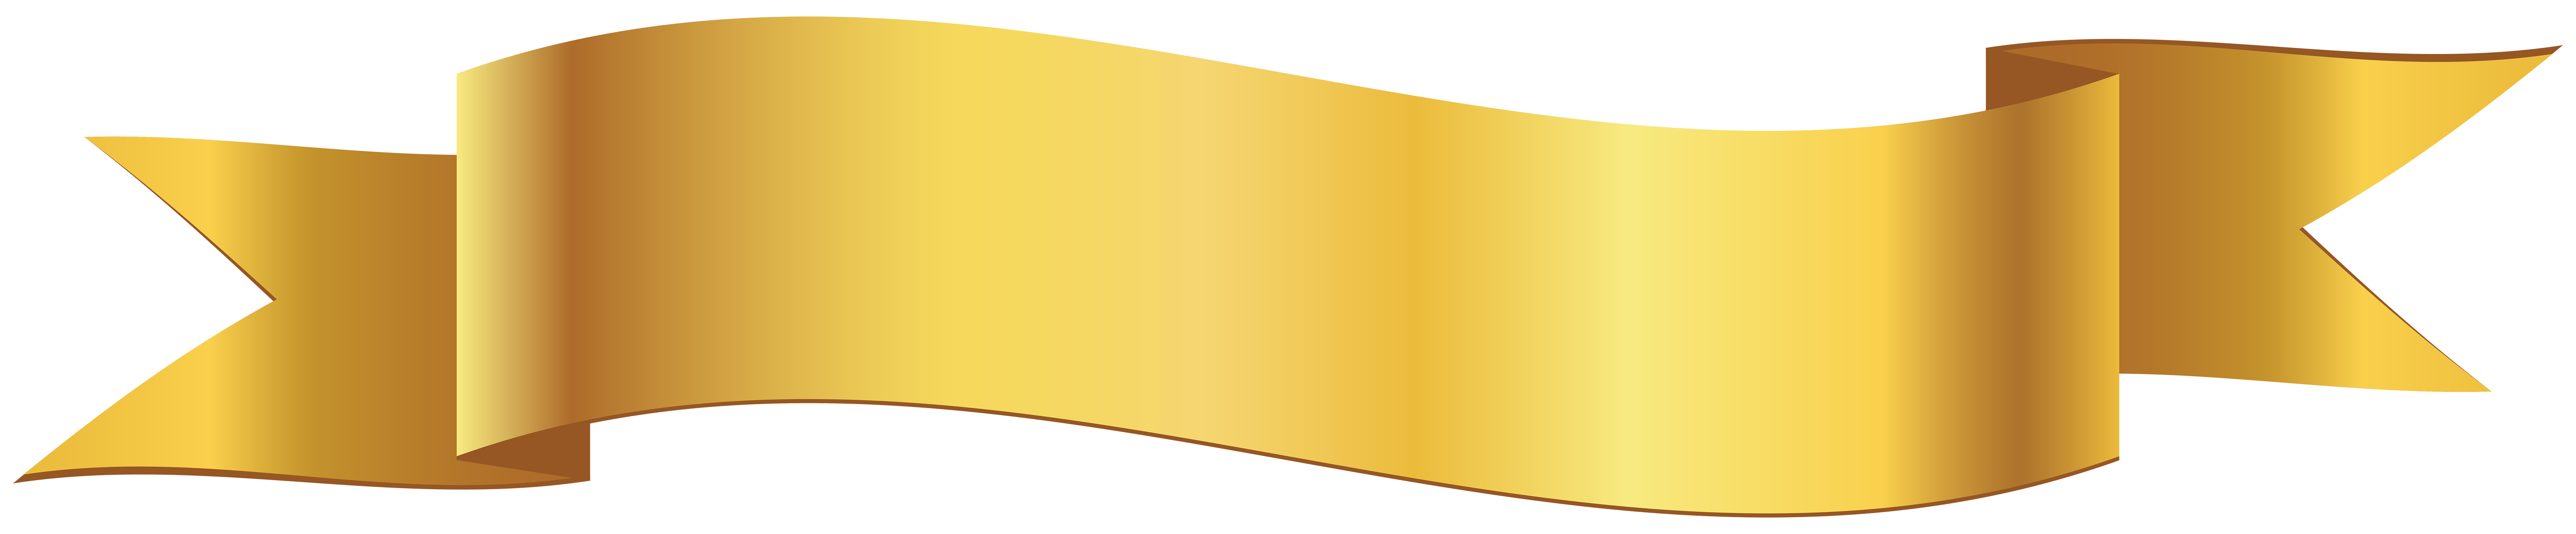 Yellow banner png. Clip art image gallery